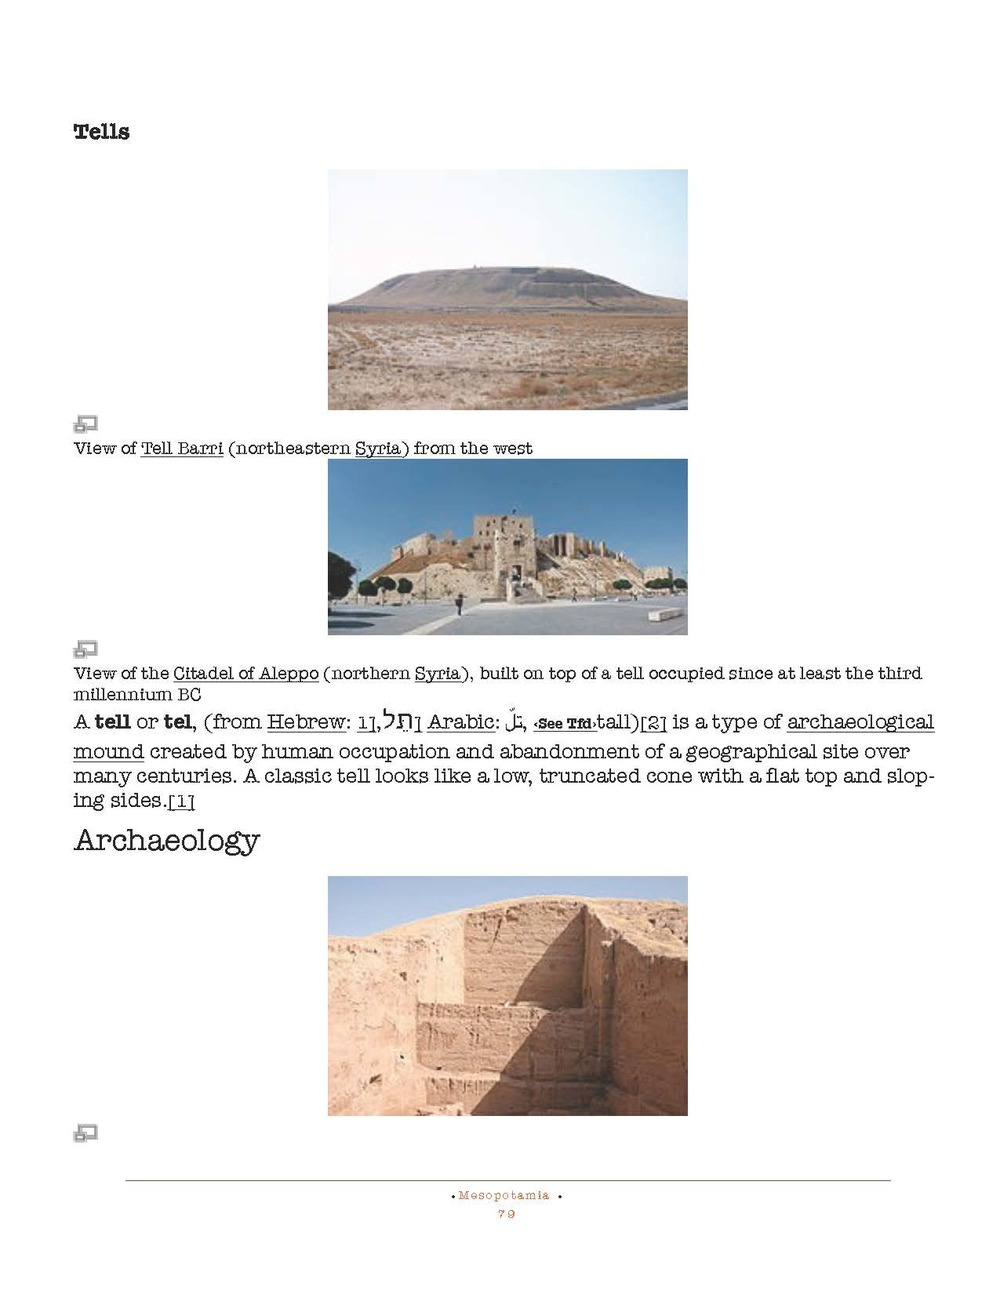 HOCE- Fertile Crescent Notes_Page_079.jpg